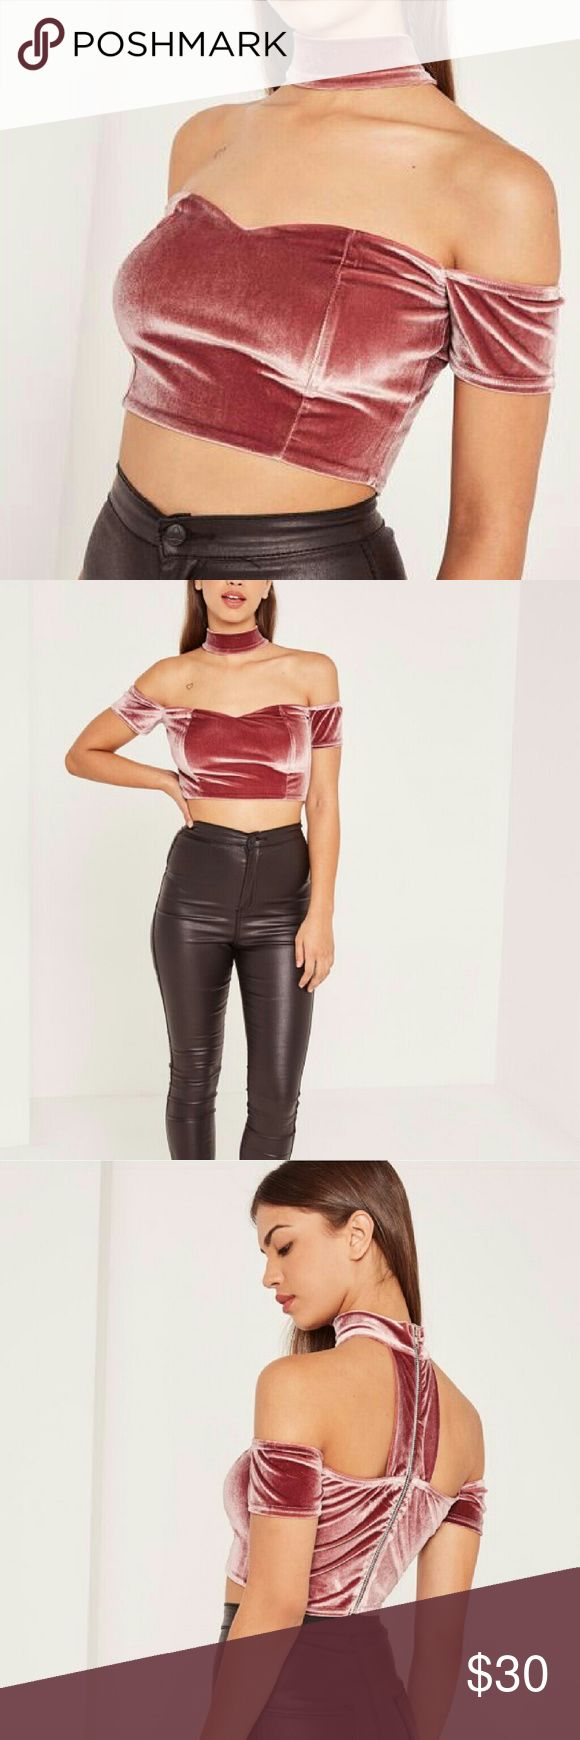 Missguided Pink Velvet Chocker Neck Bardot Top Crop top is brand new with tags!  Style: Pink Velvet Chocker Neck Bardot Crop Top Size: 8 Regular/ Medium Color: Pink Missguided Tops Crop Tops